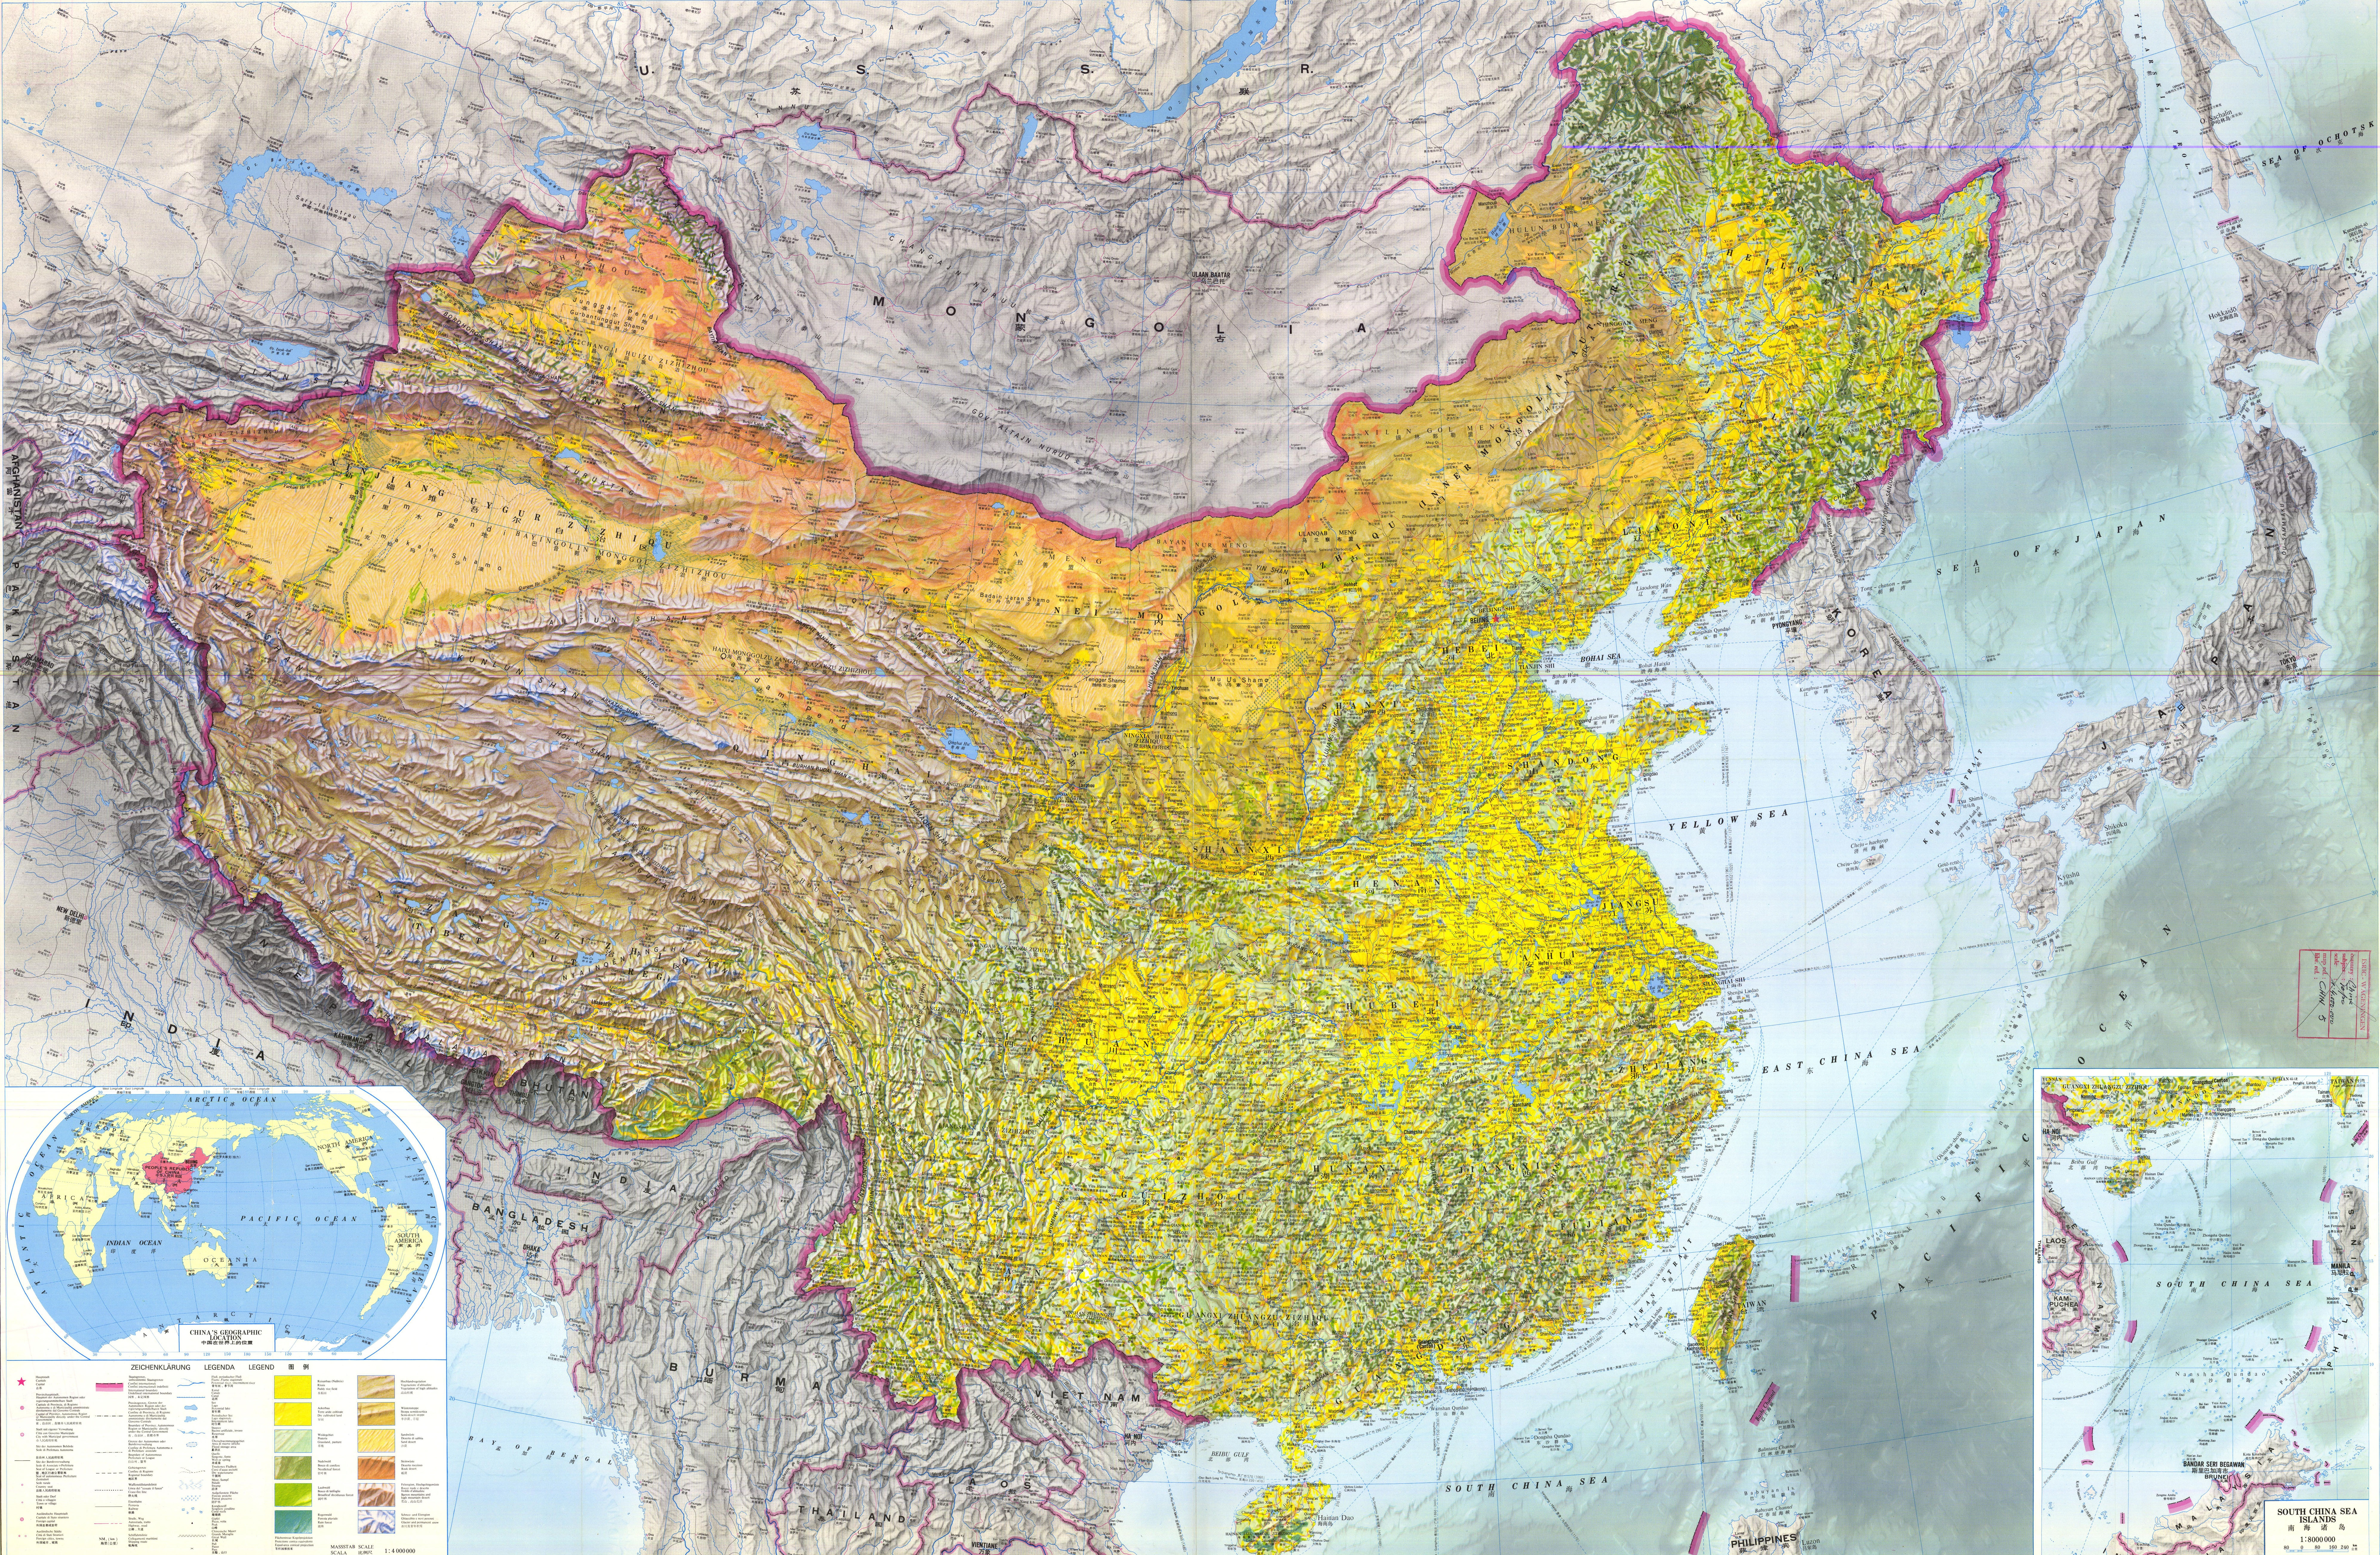 China Topographic Map Large detailed topographic map of China